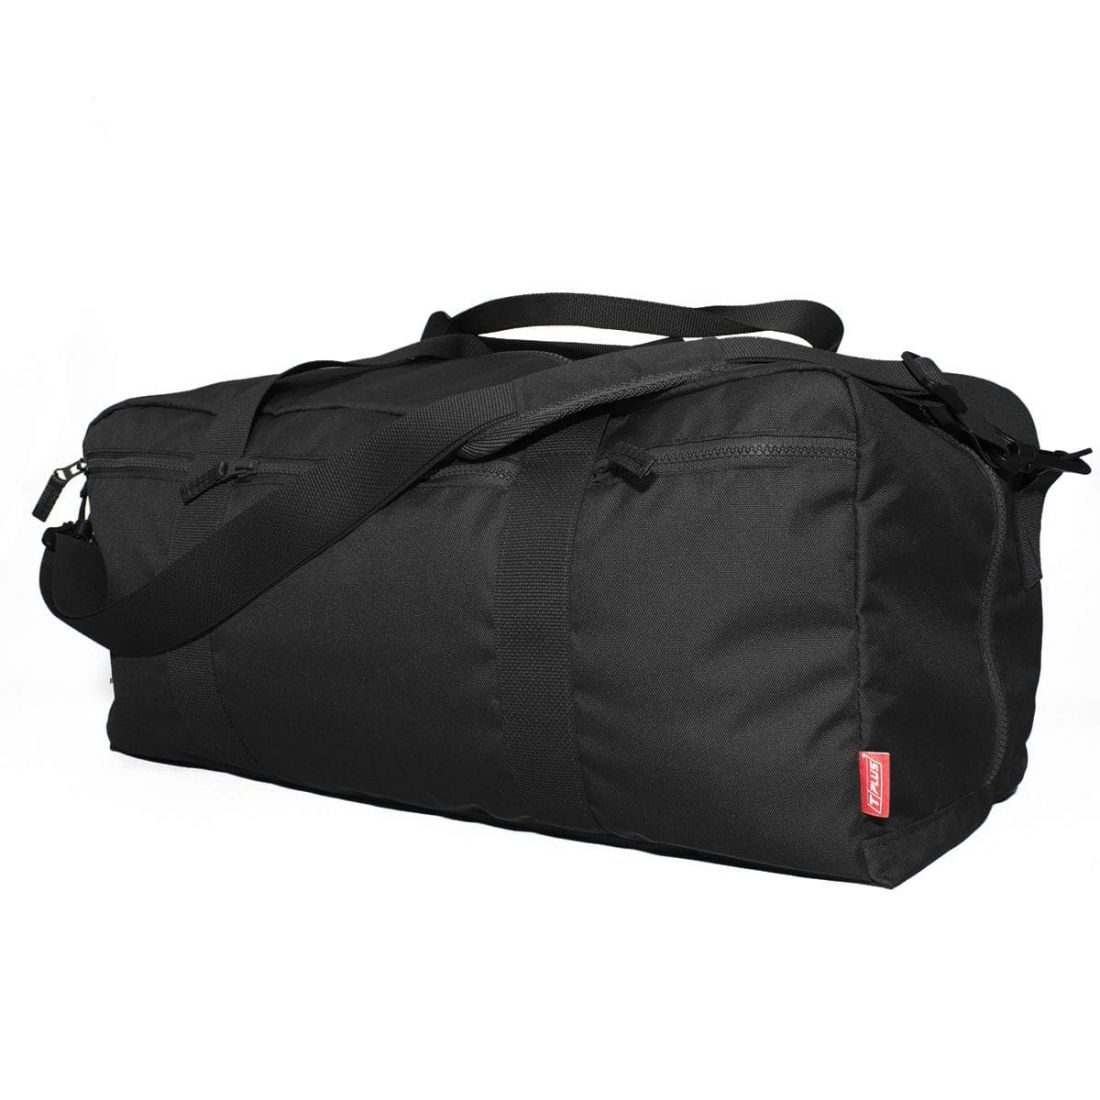 "Сумка ""Duffle Bag"" 530х270х270 мм (оксфорд 600, чёрный), Tplus"